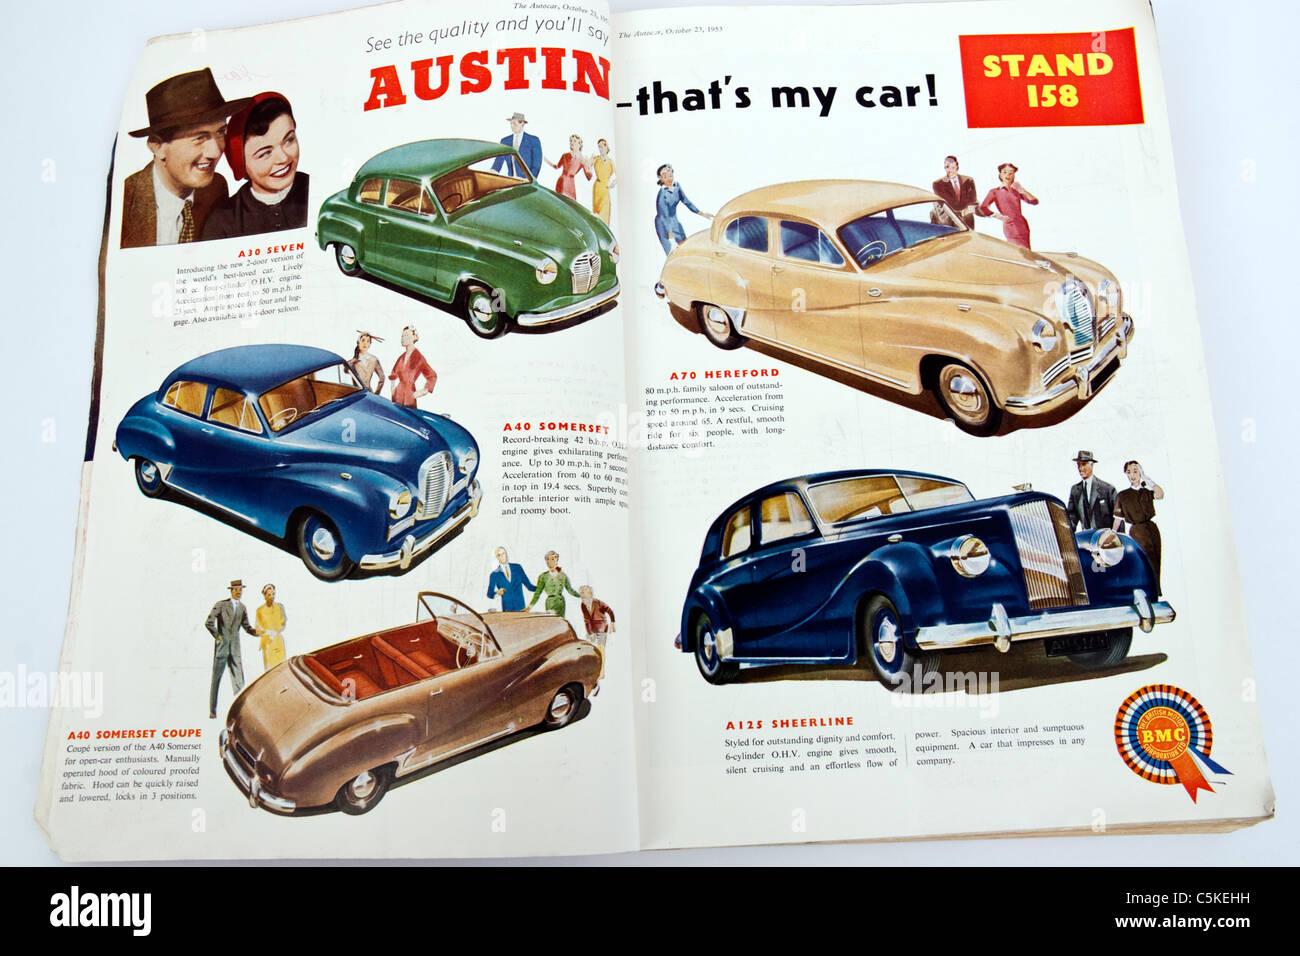 Illustration of 1953 Austin classic cars from \